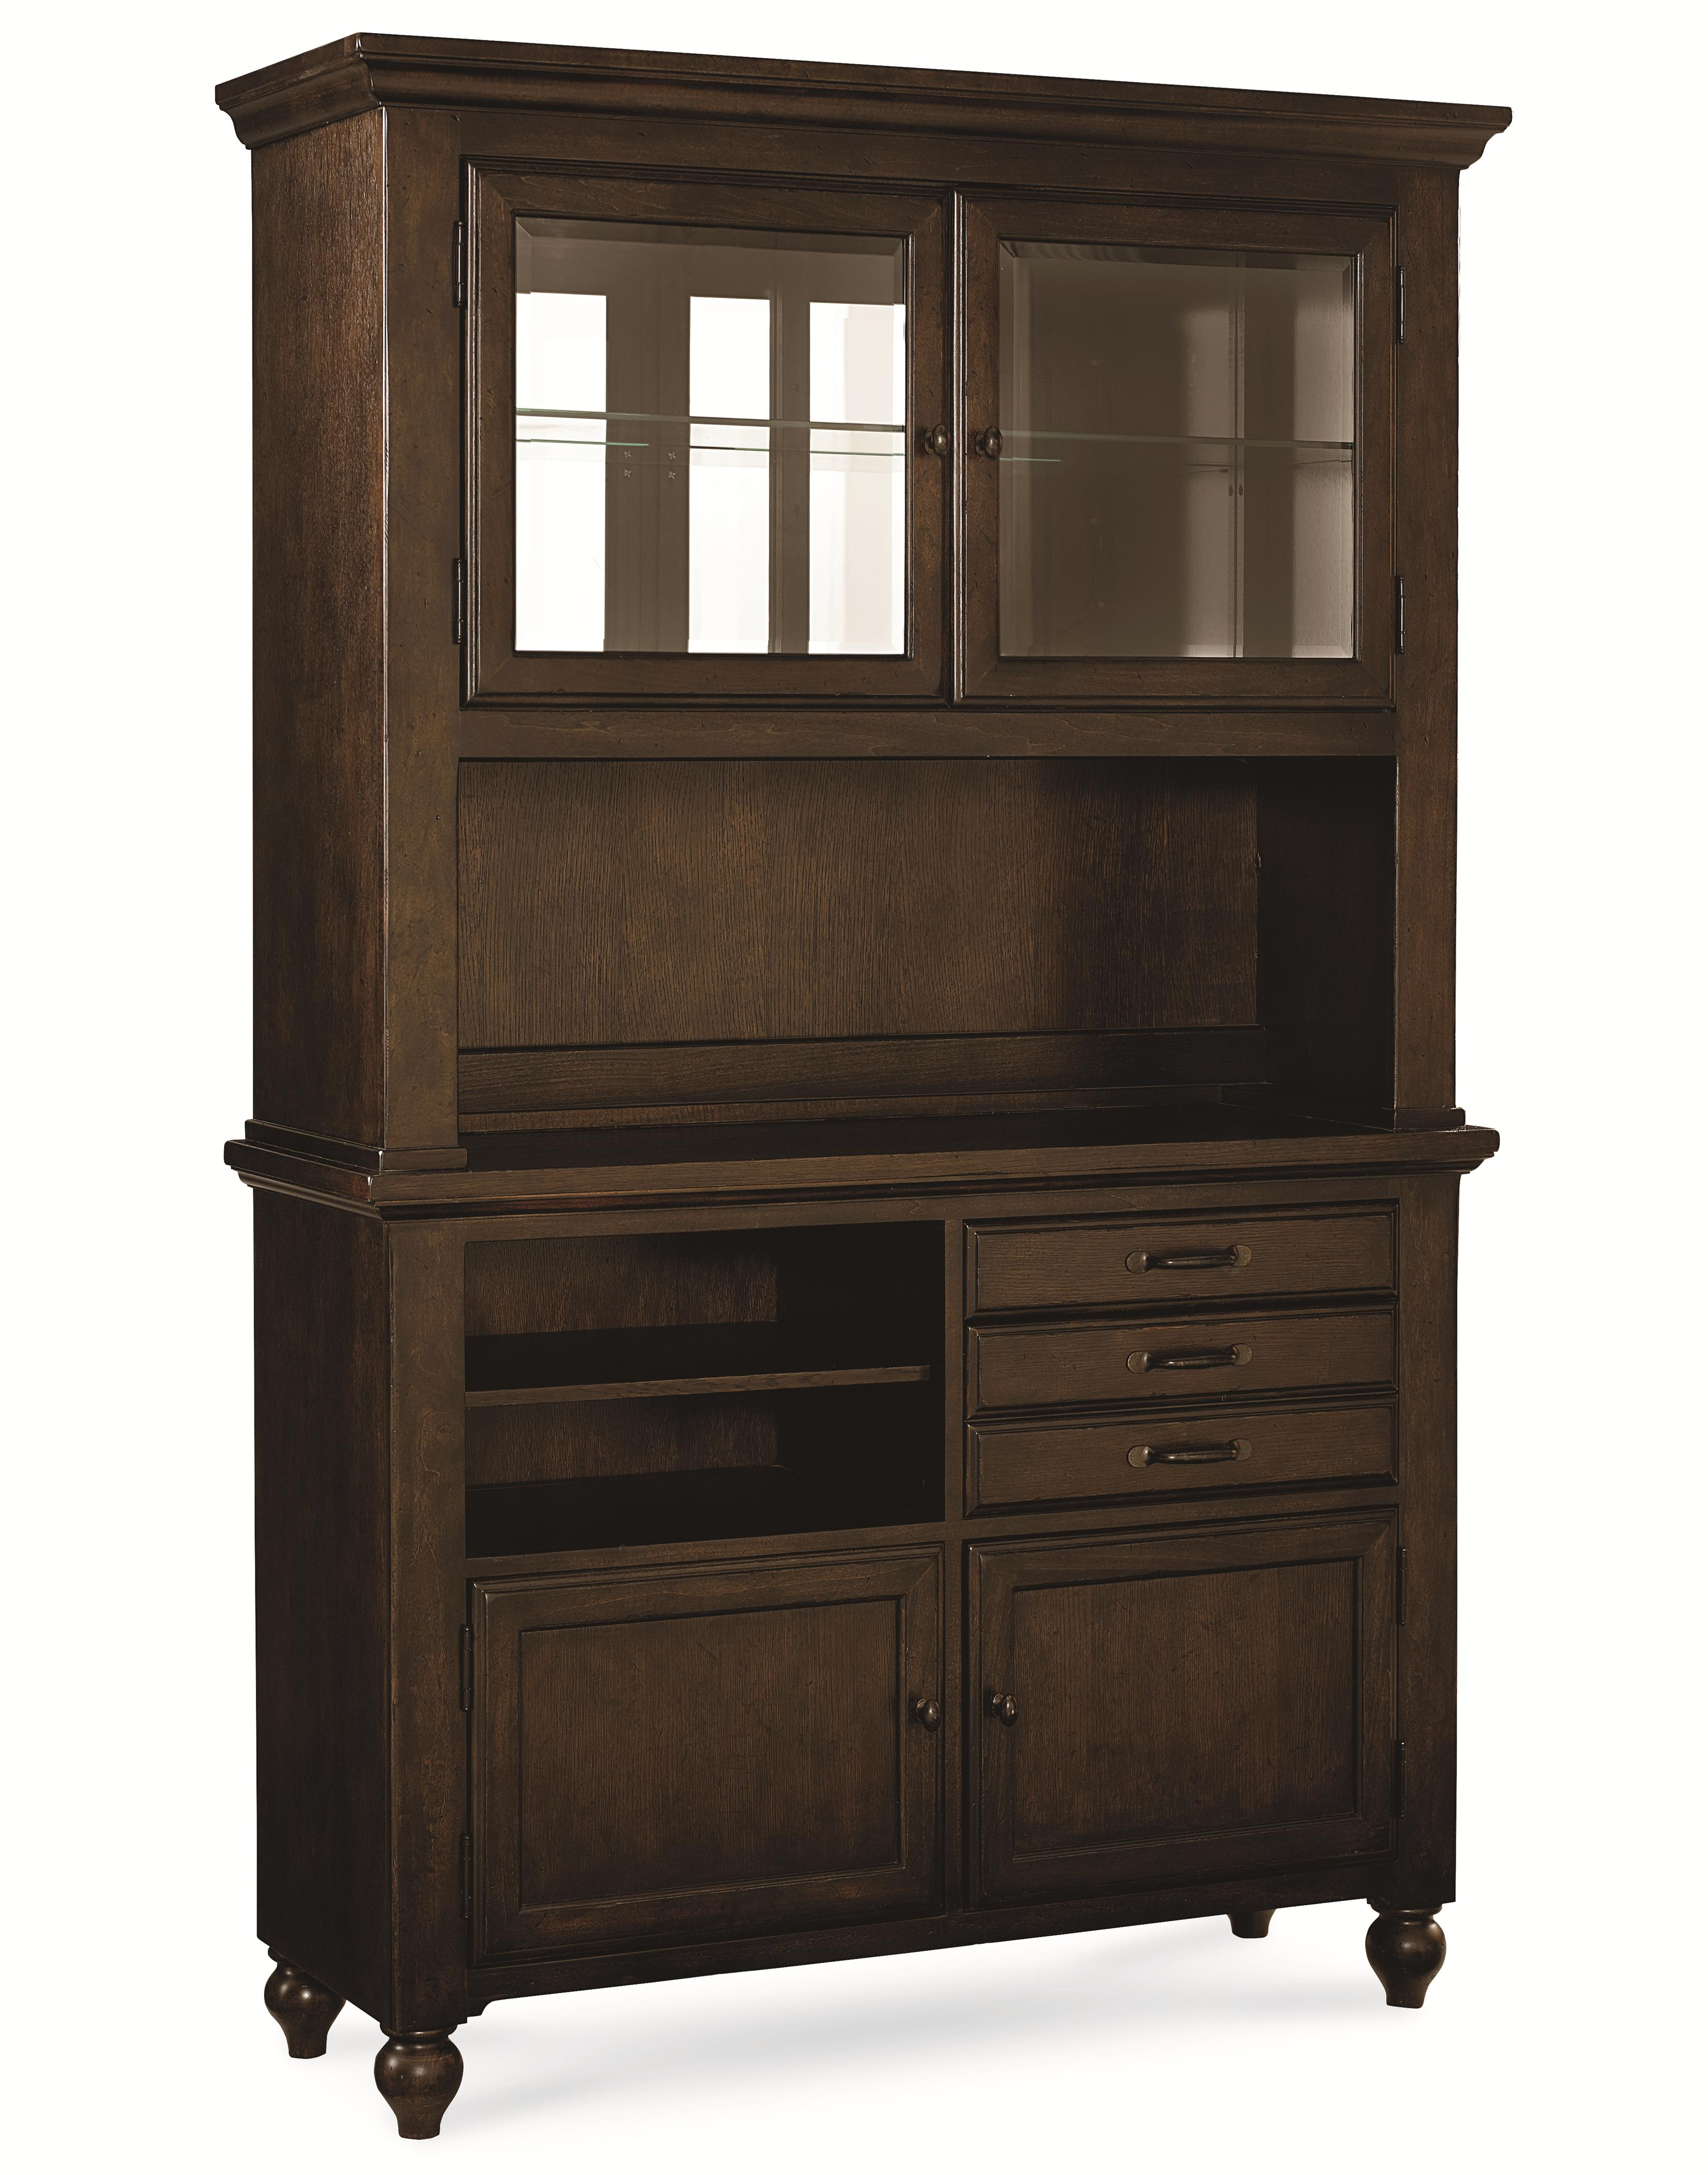 complete china cabinet with mirrored back and wine storage by legacy classic wolf and gardiner. Black Bedroom Furniture Sets. Home Design Ideas